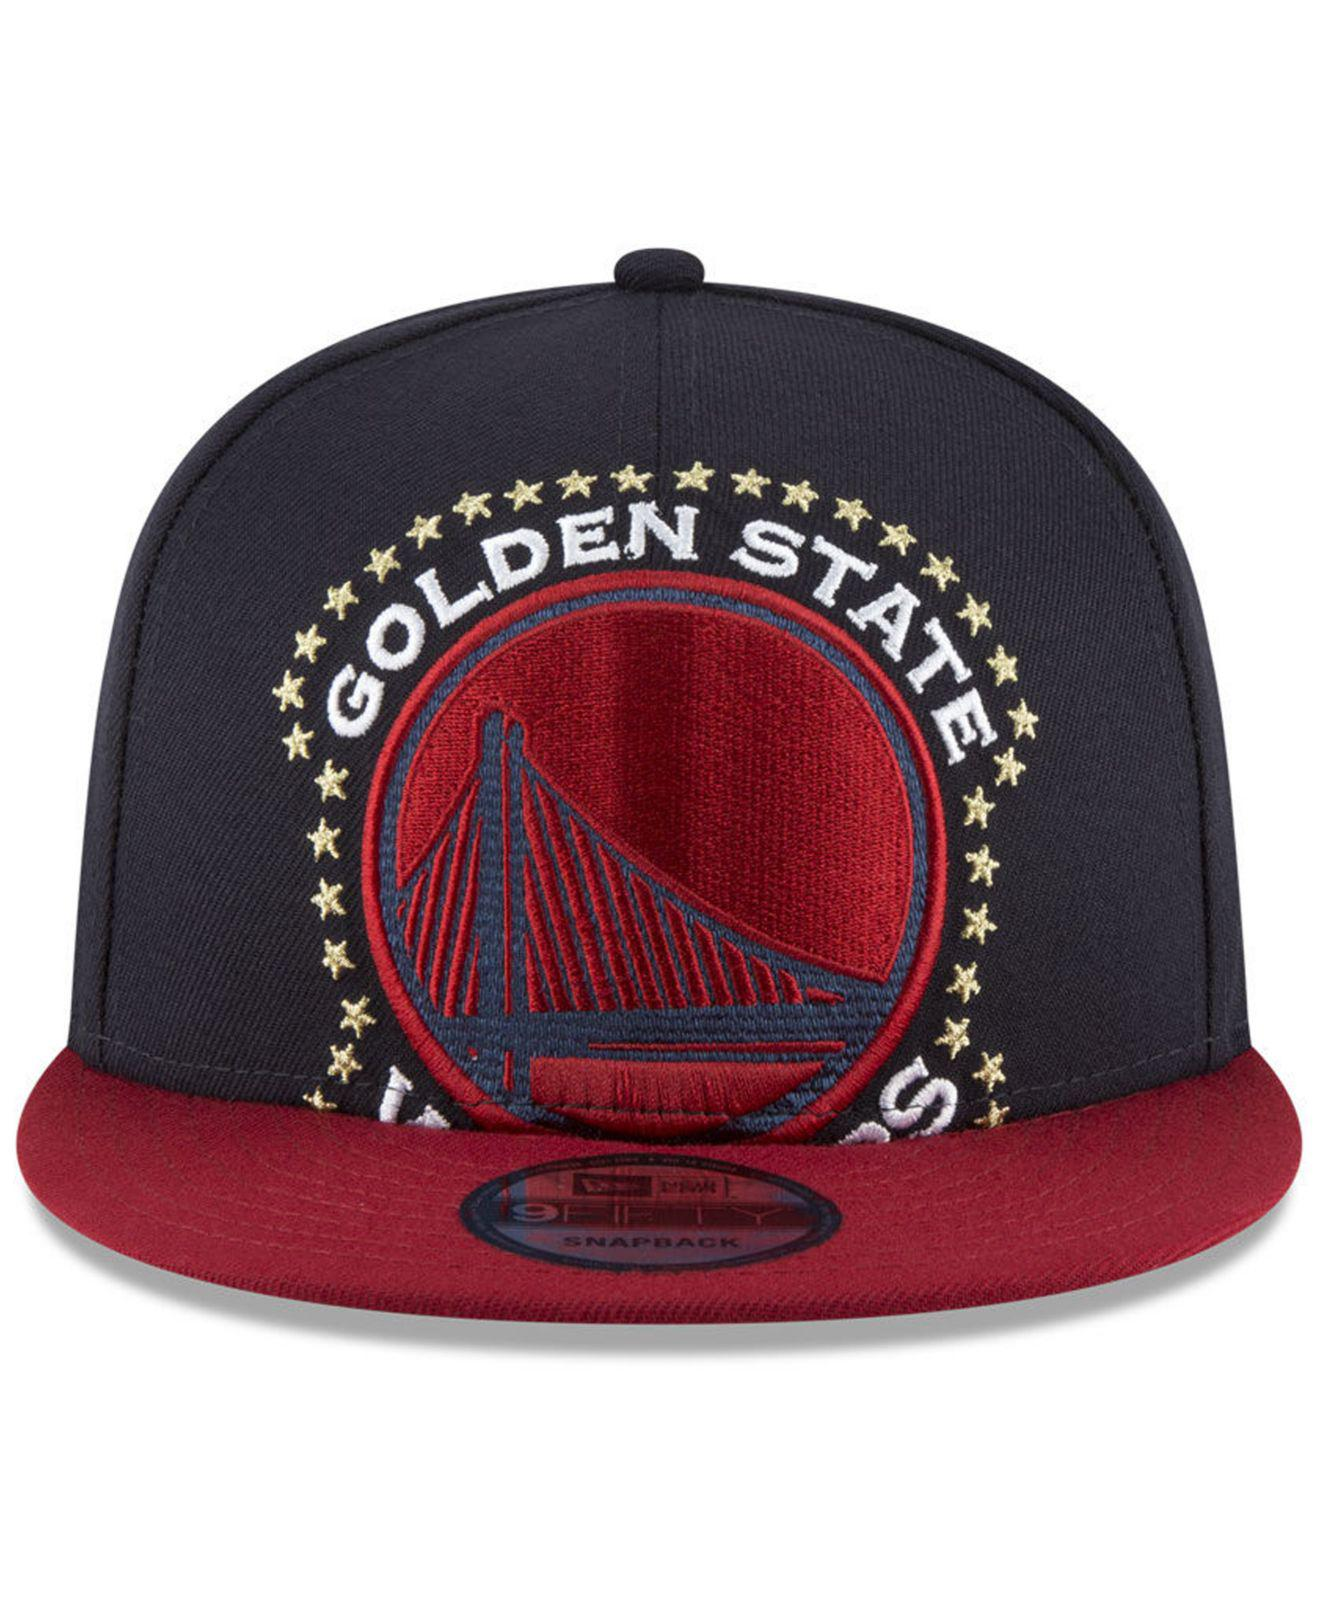 768661359ee72 ... order lyst ktz golden state warriors xl americana 9fifty snapback cap  in blue for men 2e2aa